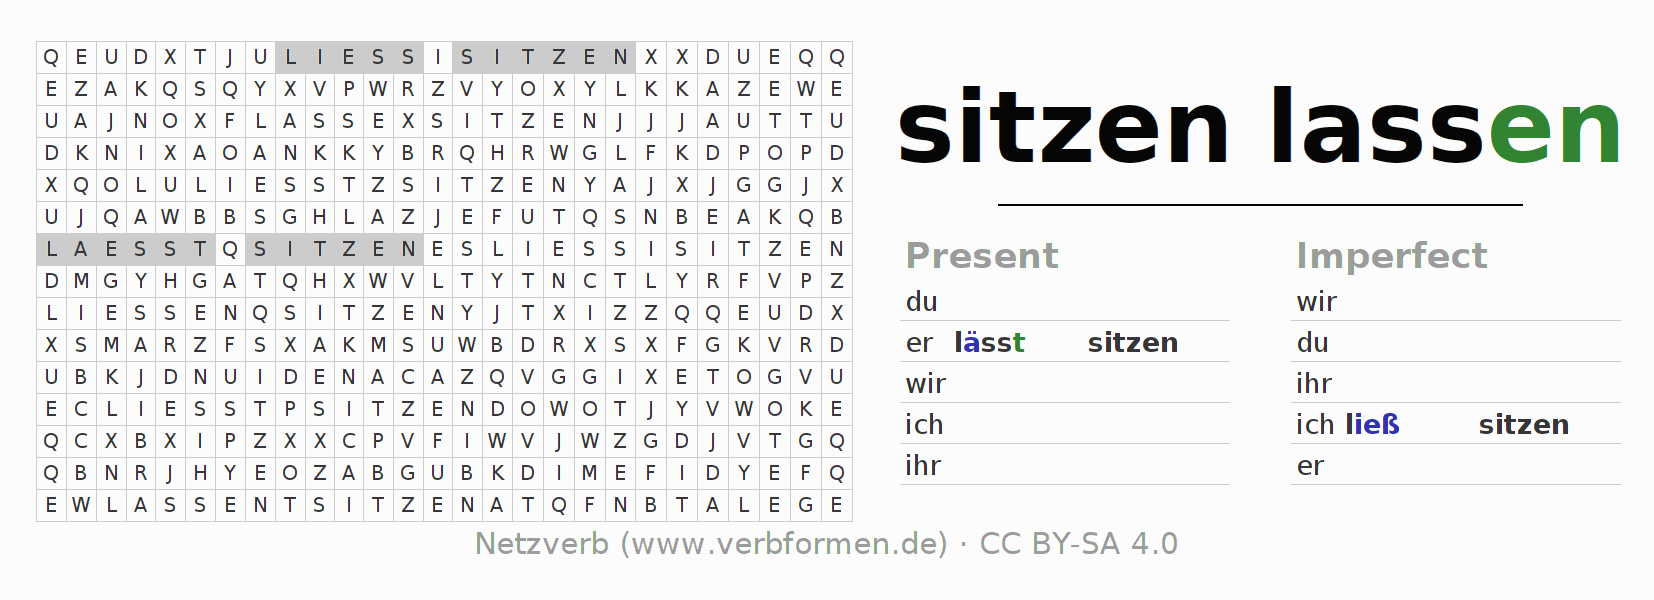 Word search puzzle for the conjugation of the verb sitzenlassen